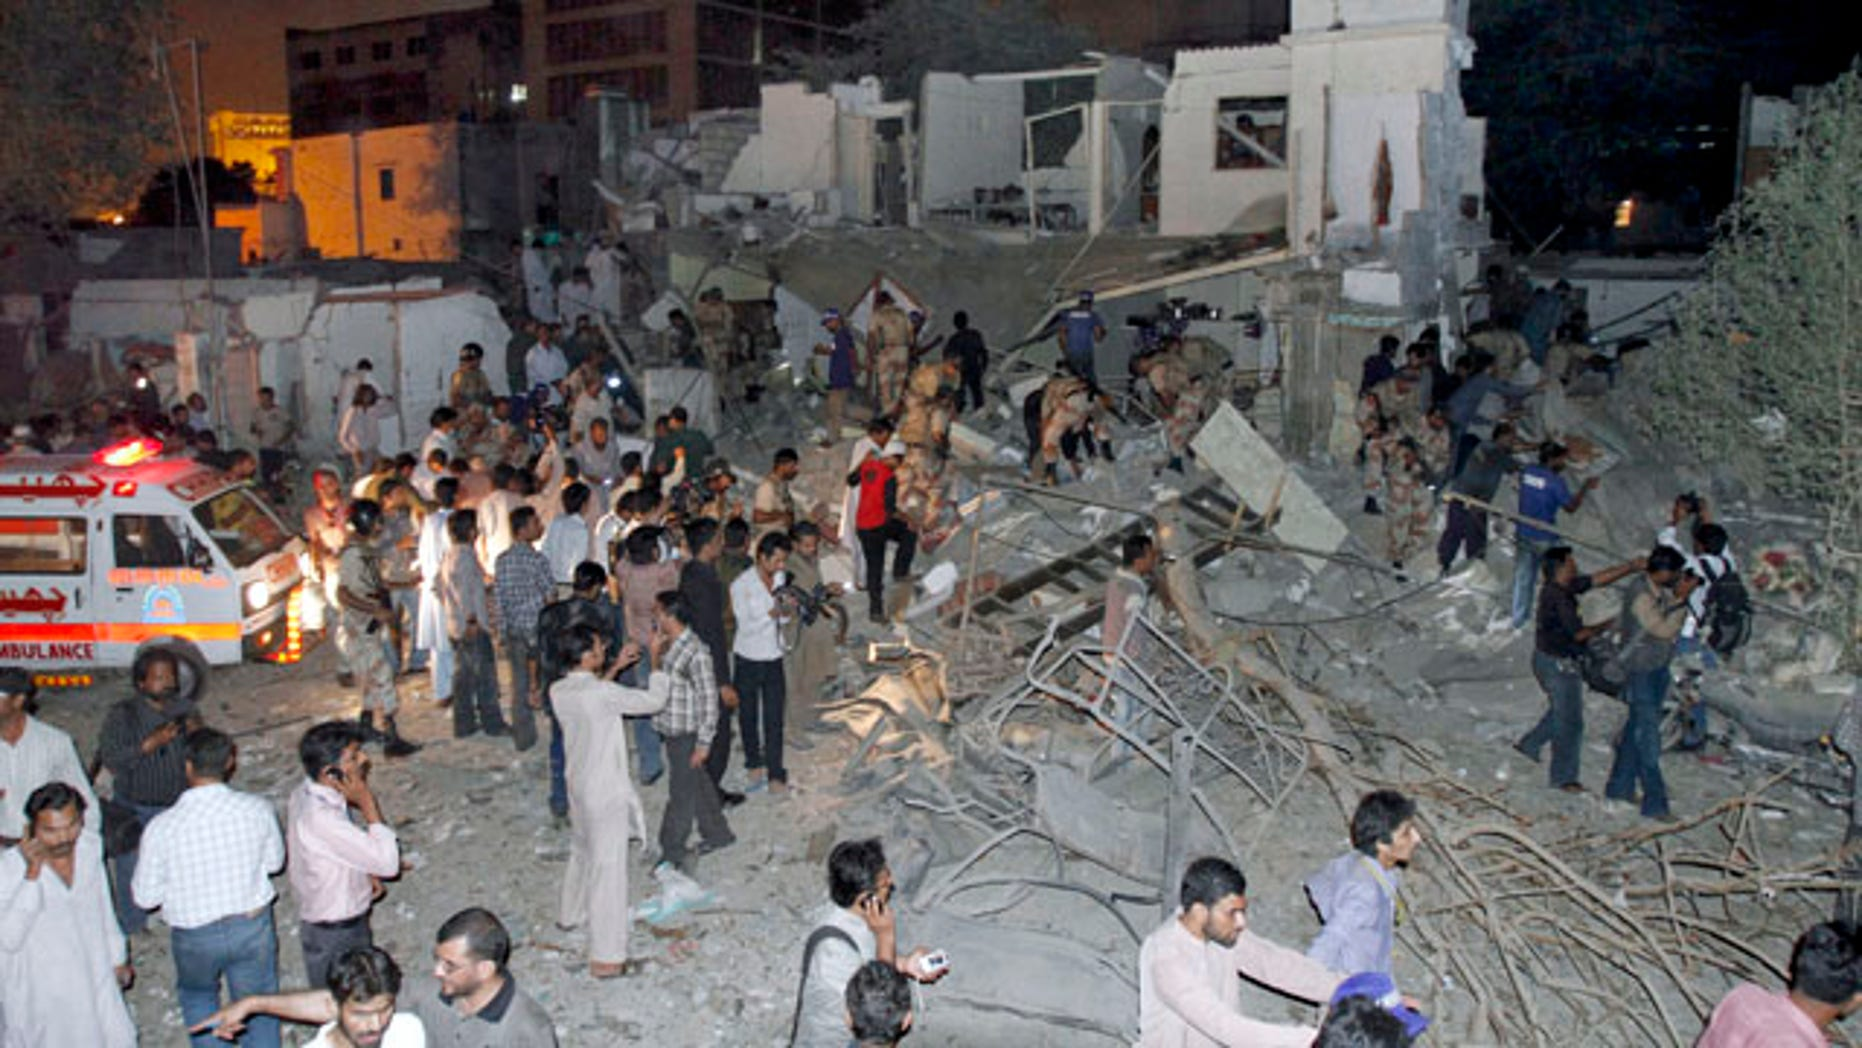 Nov. 11: Pakistani security officials and media gather at the site of a bomb explosion in Karachi, Pakistan.